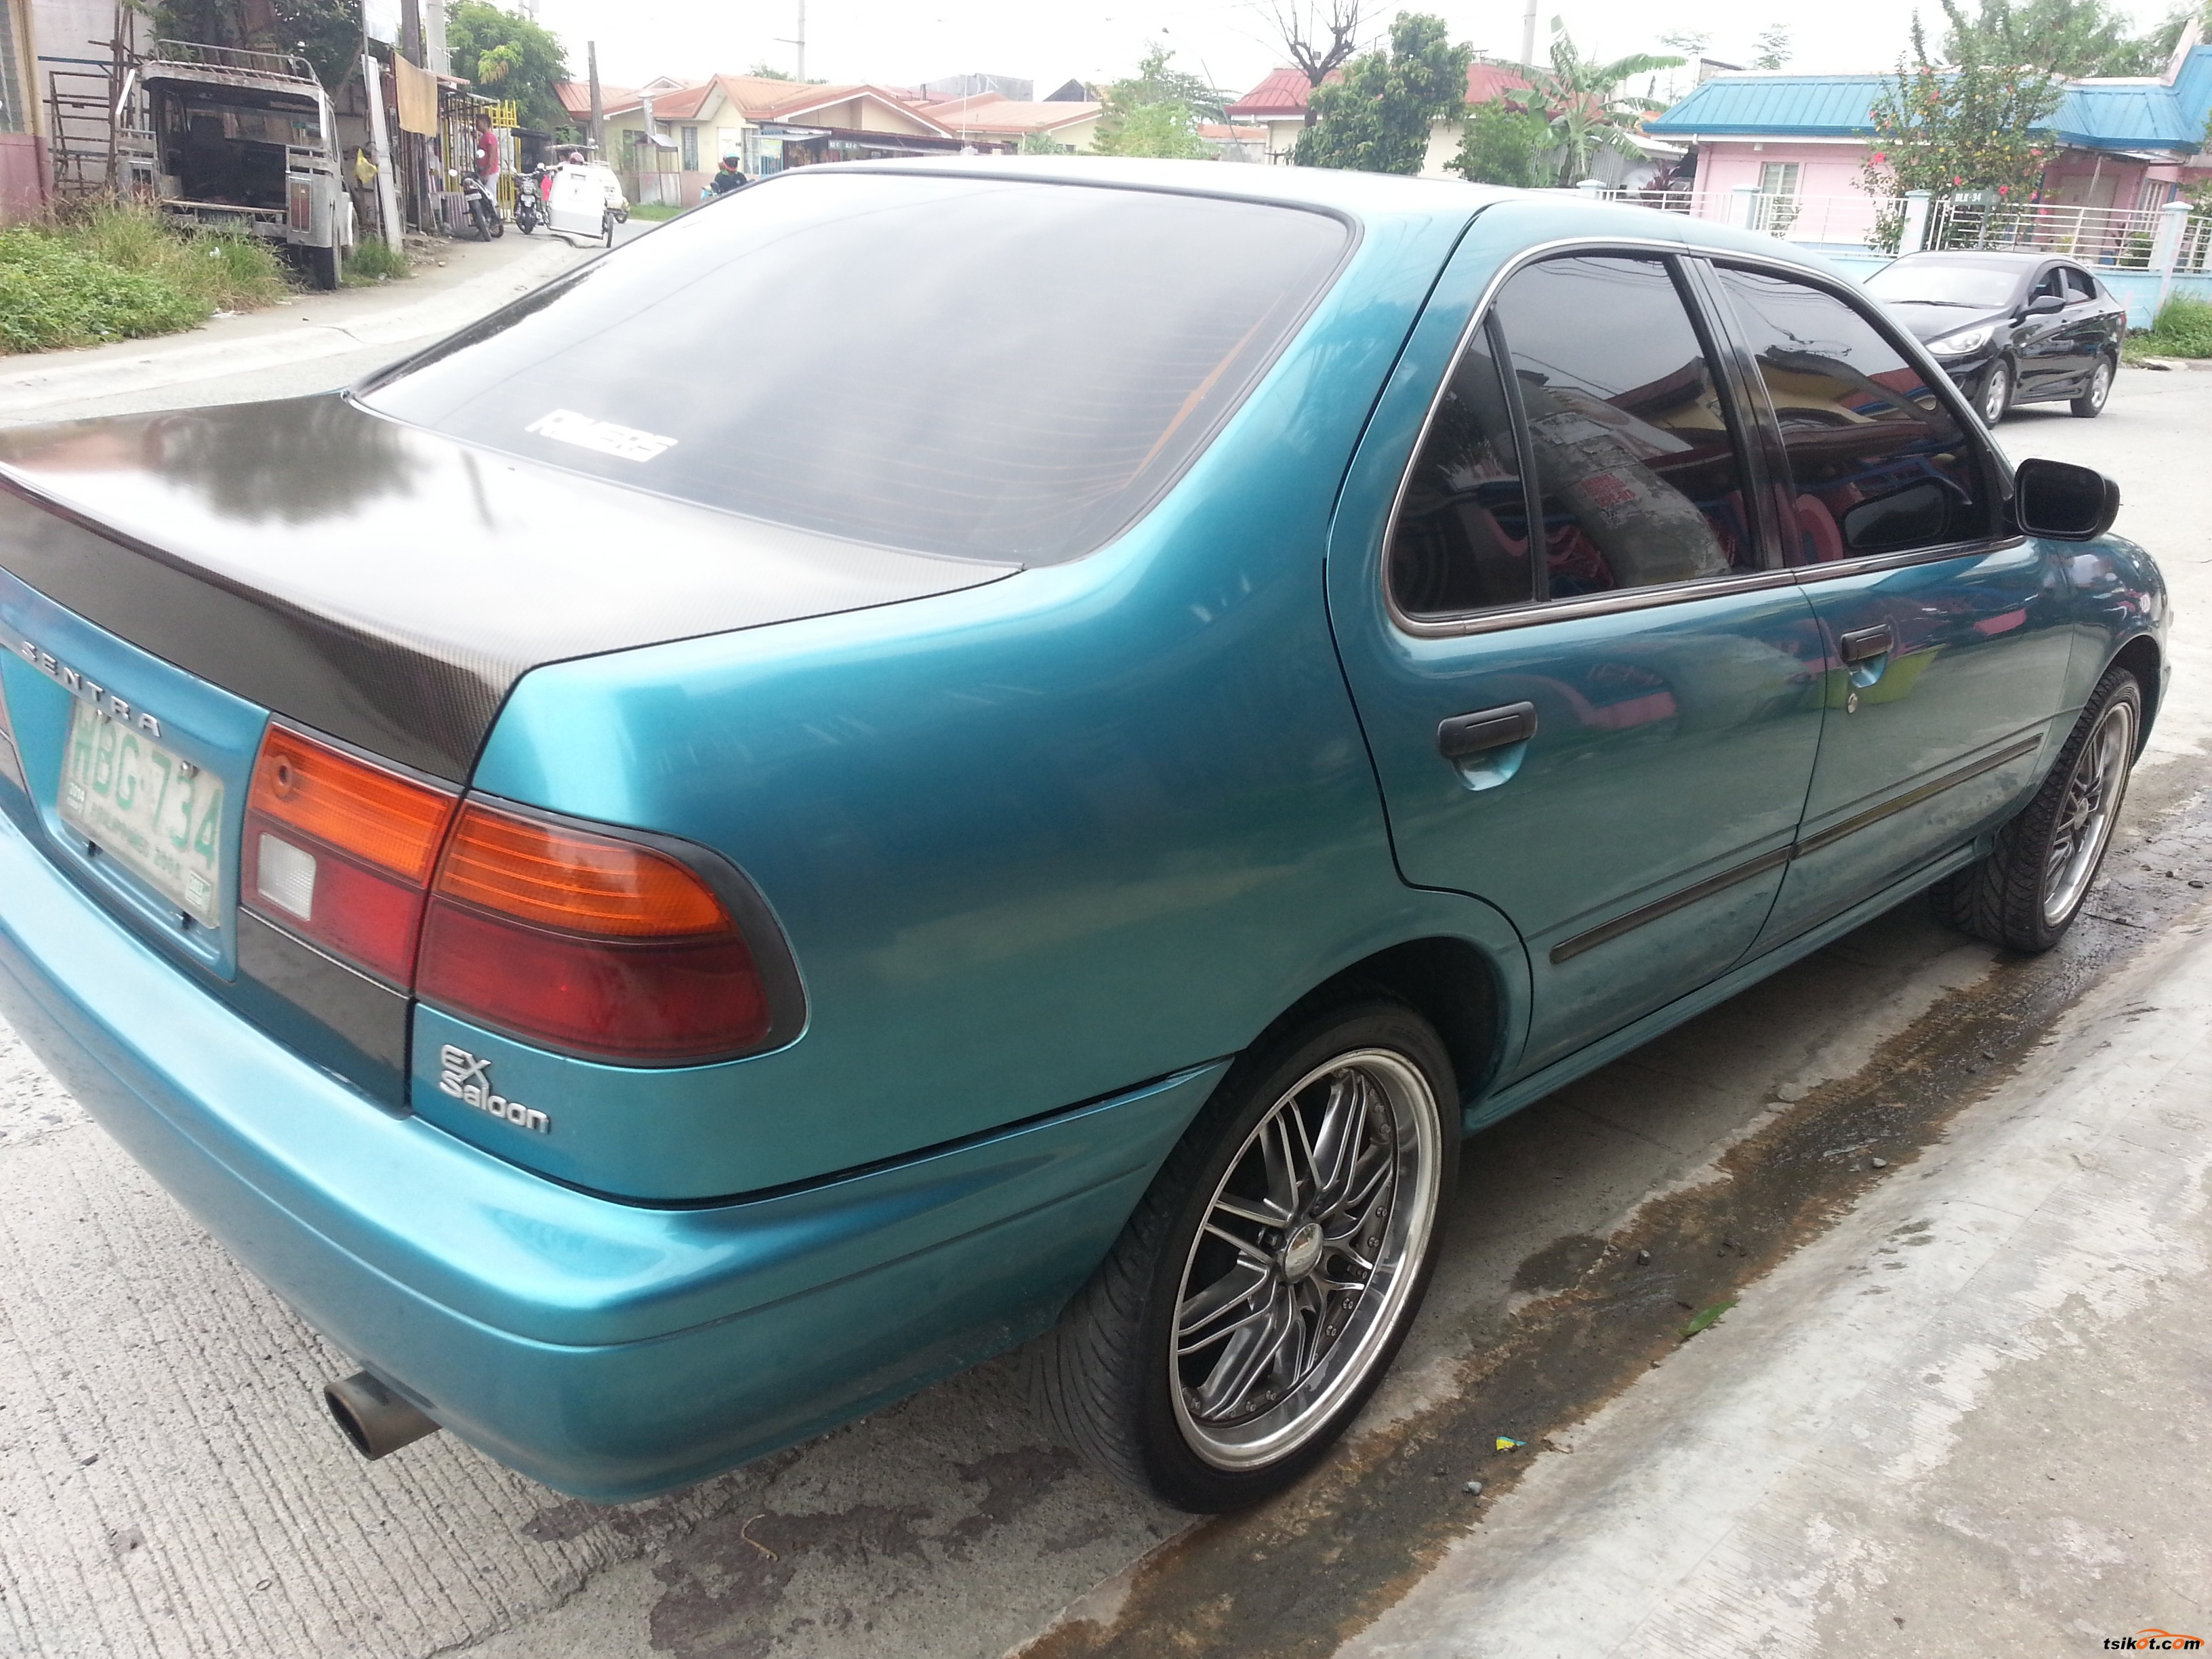 Nissan Sentra 1998 - Car for Sale Metro Manila